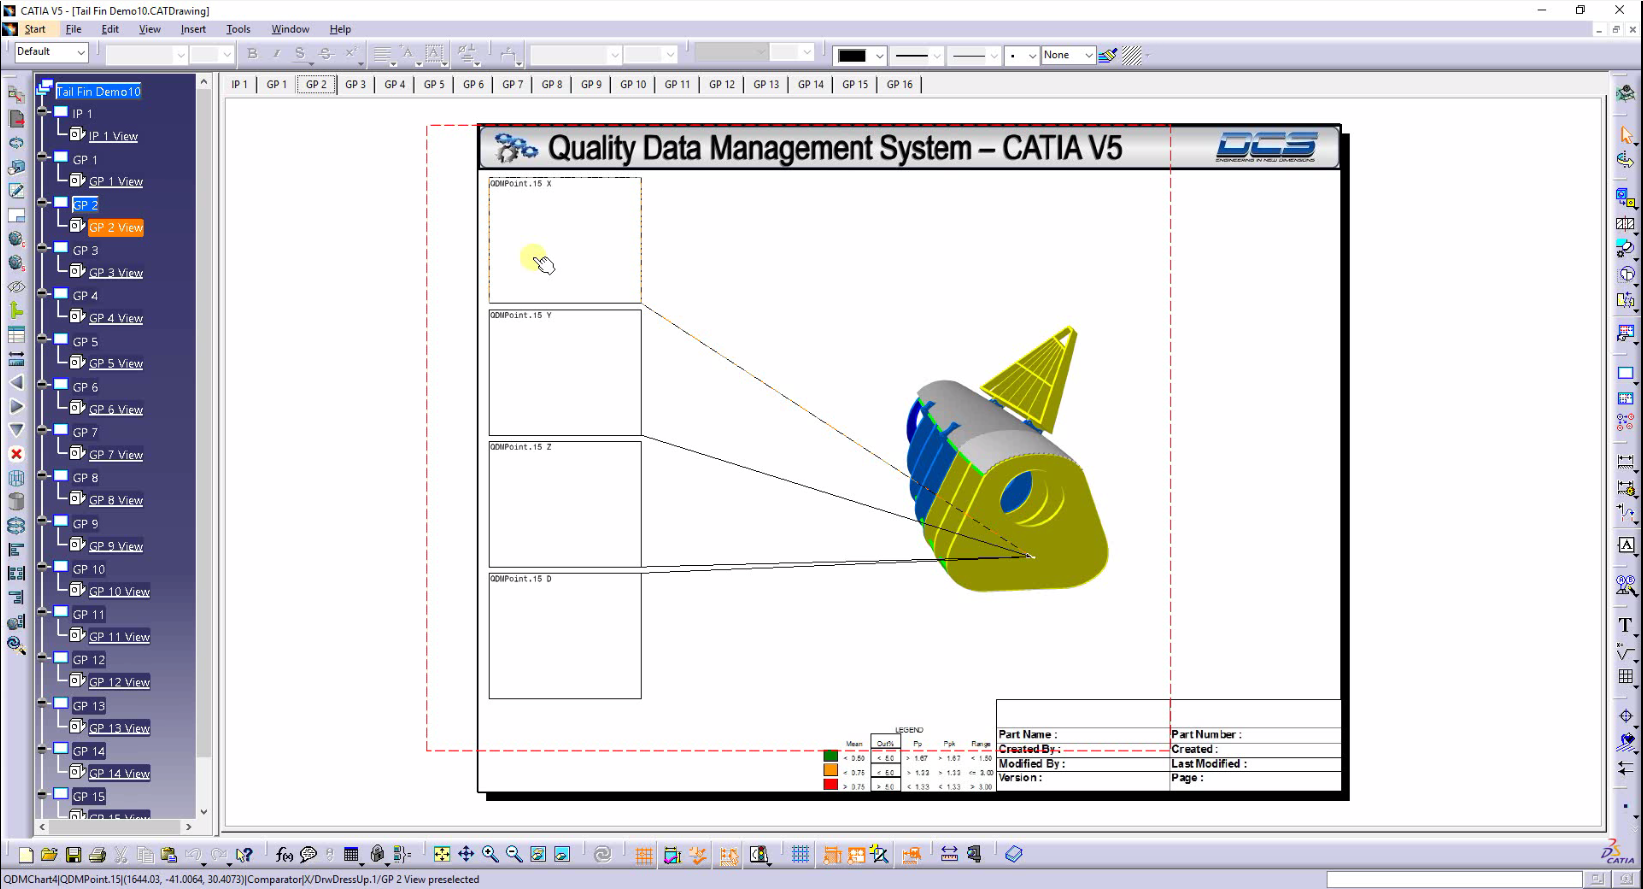 CATIA integrated inspection plans